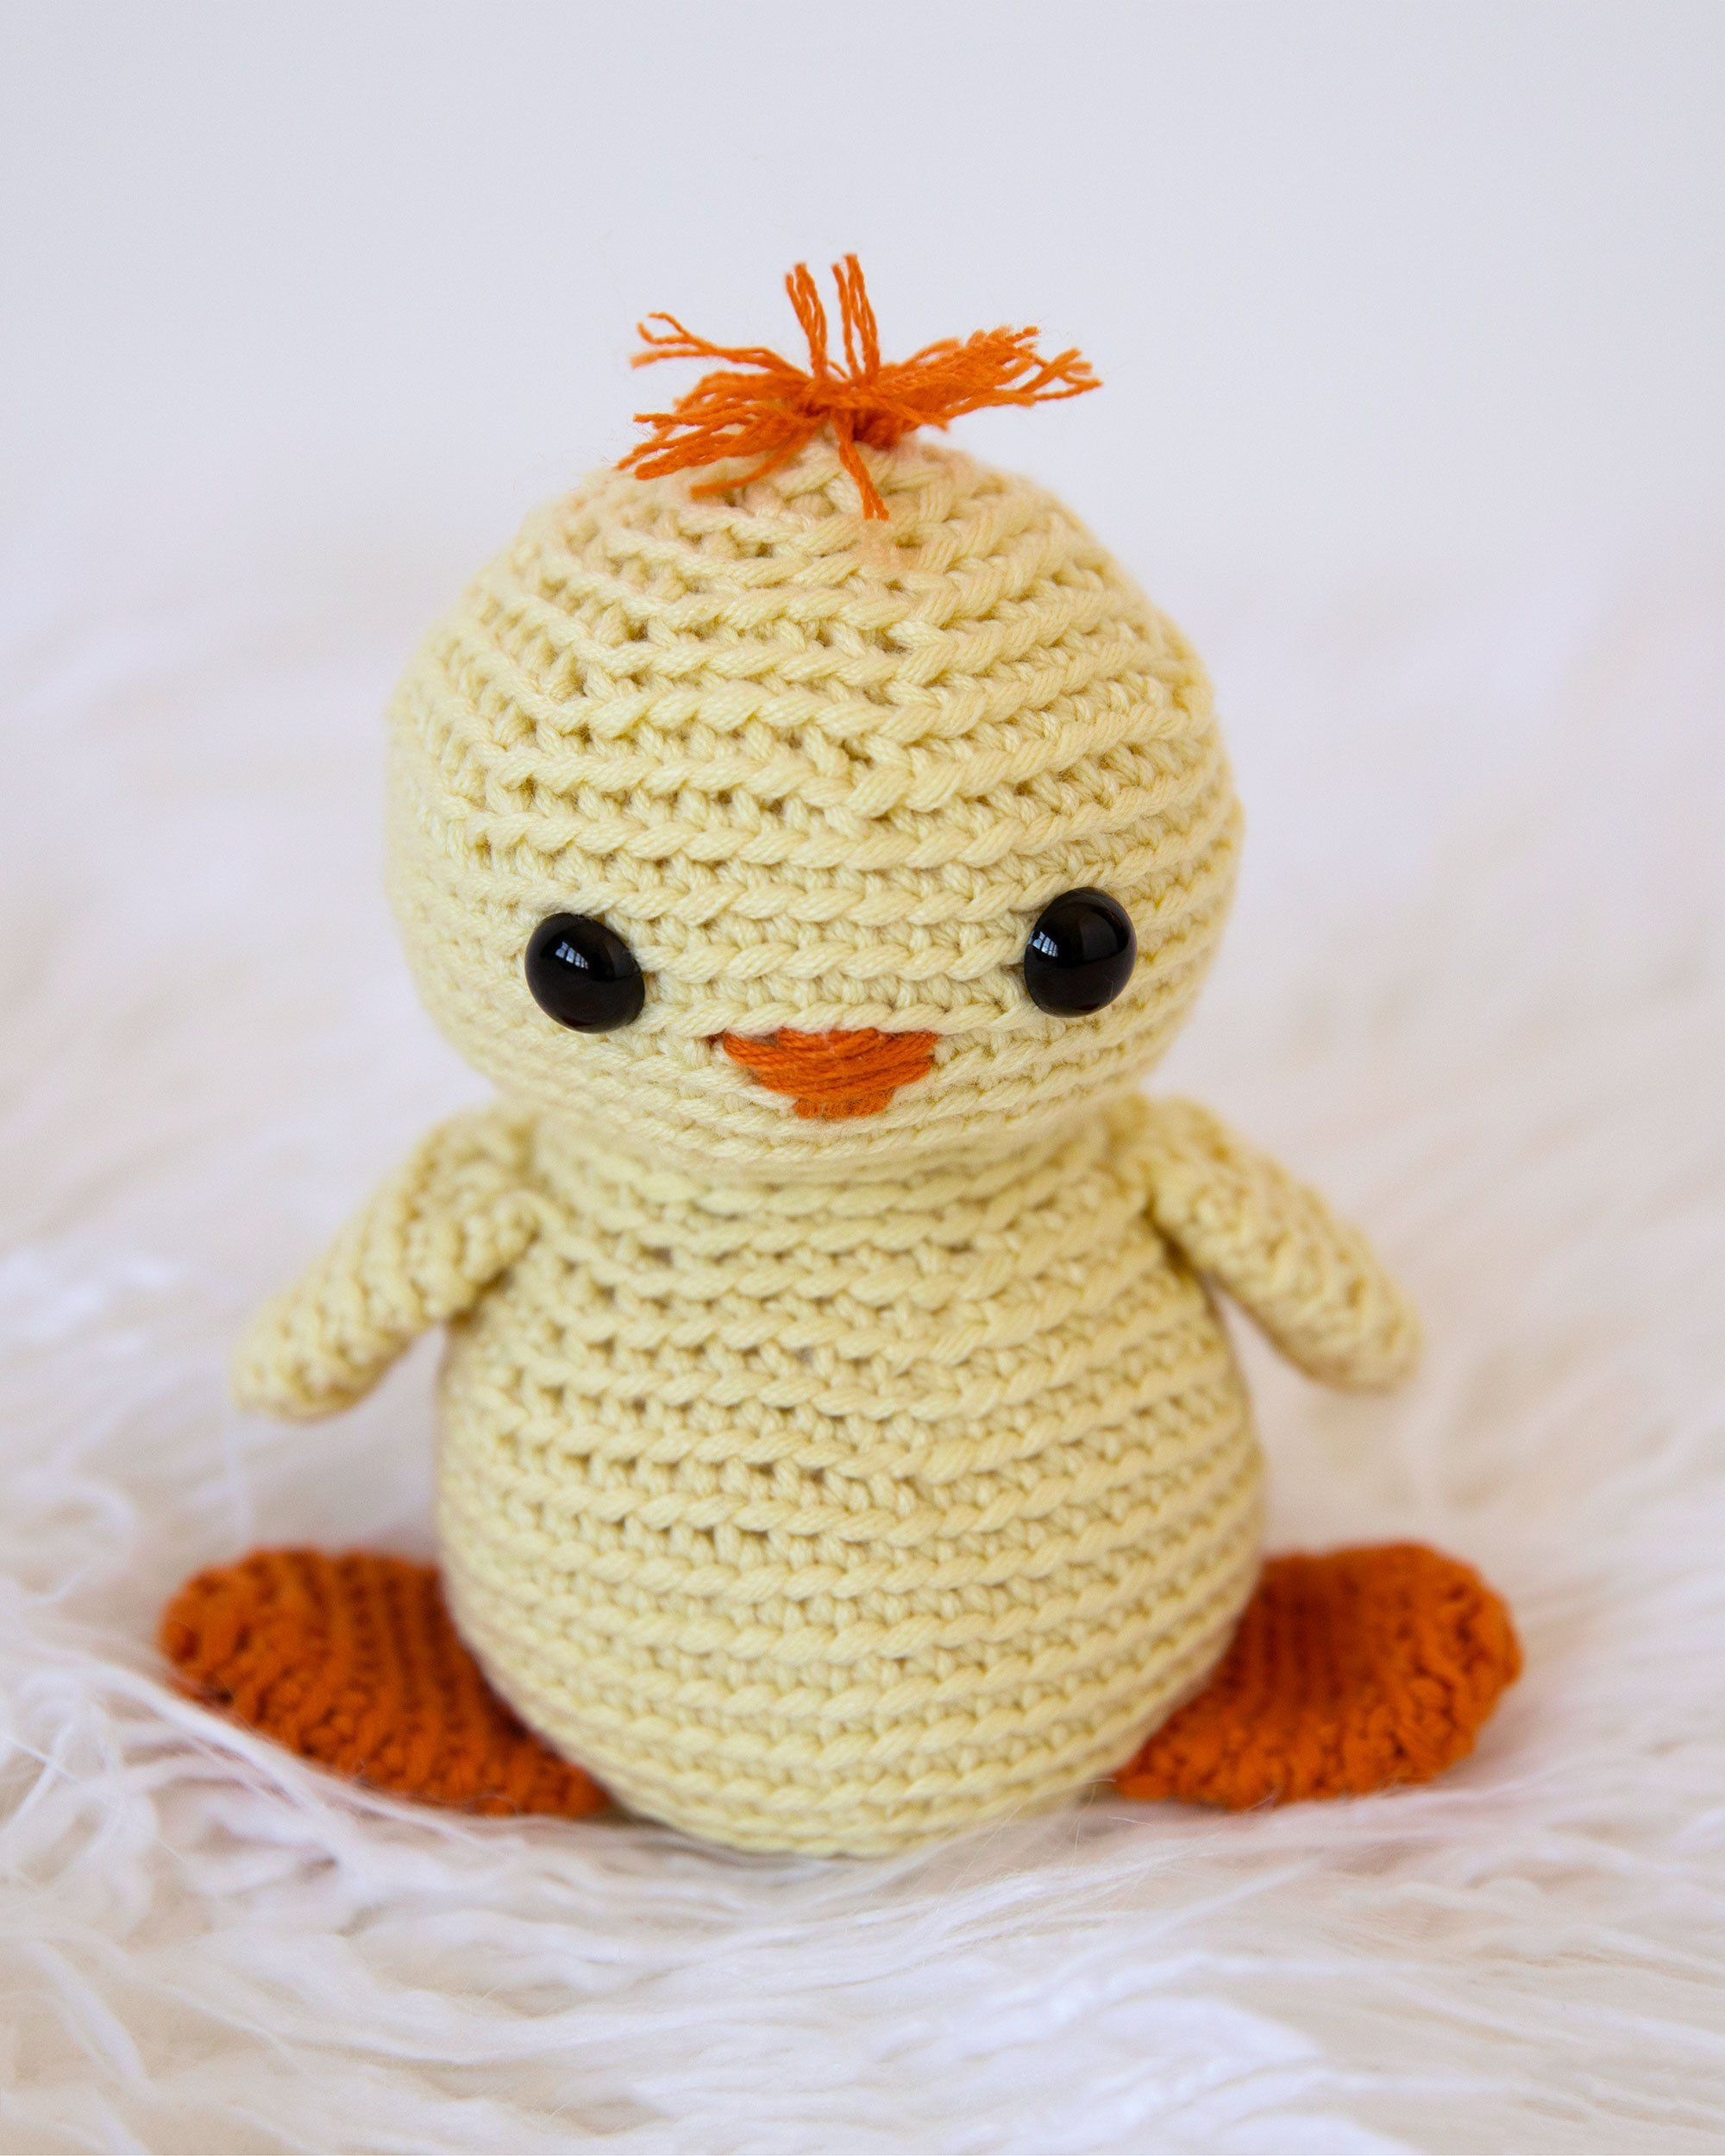 With Easter coming up soon, I thought it would be a fun project to ...